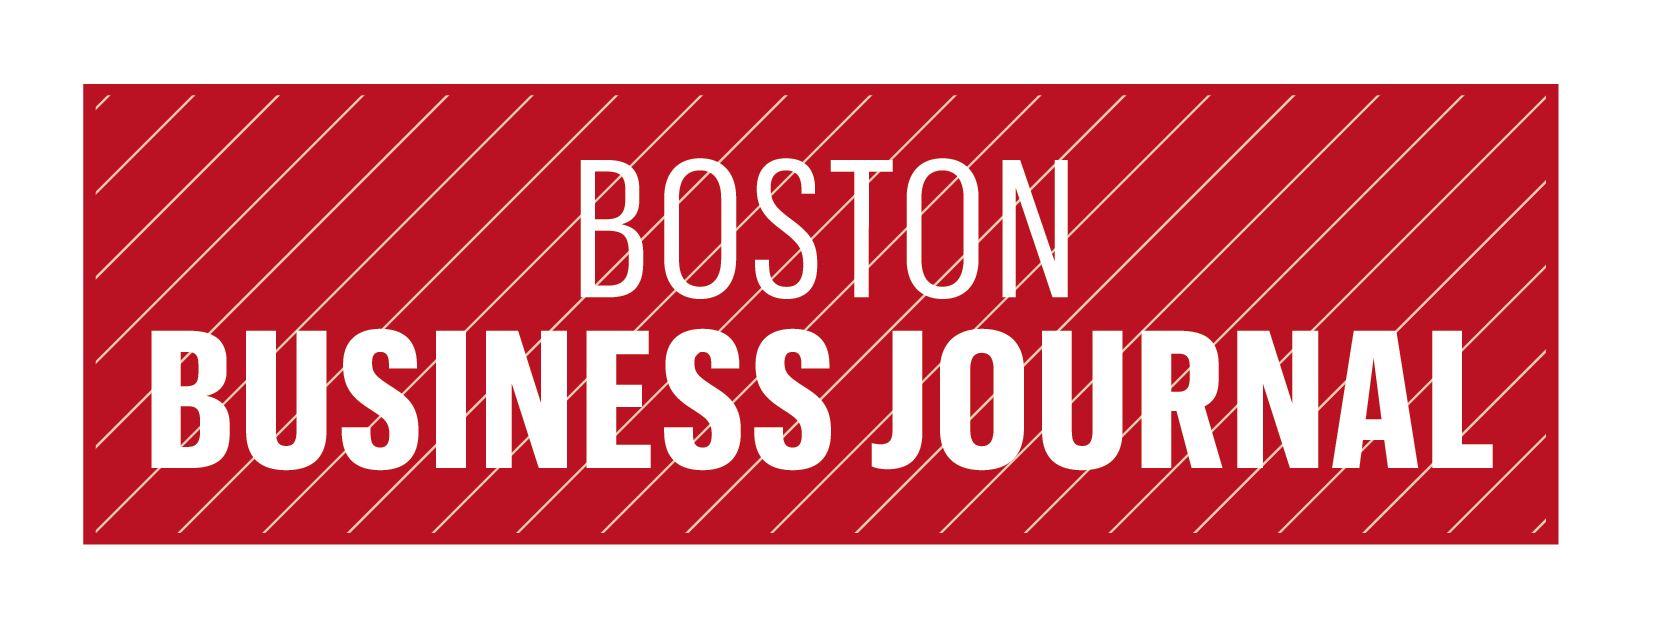 Boston Business Journal logo